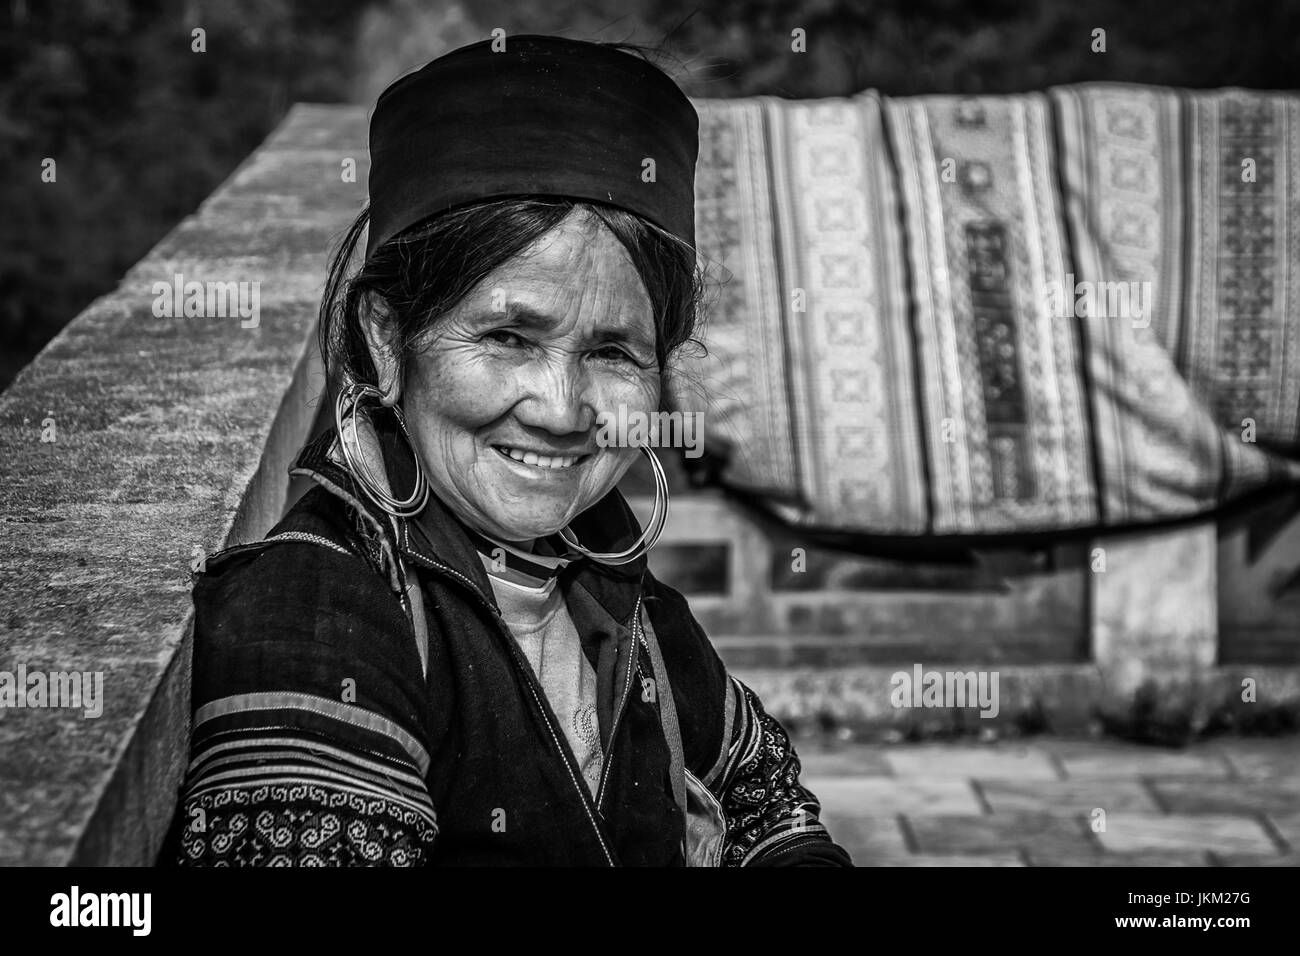 Elderly woman selling clothes in a market - April 2017 - Stock Image